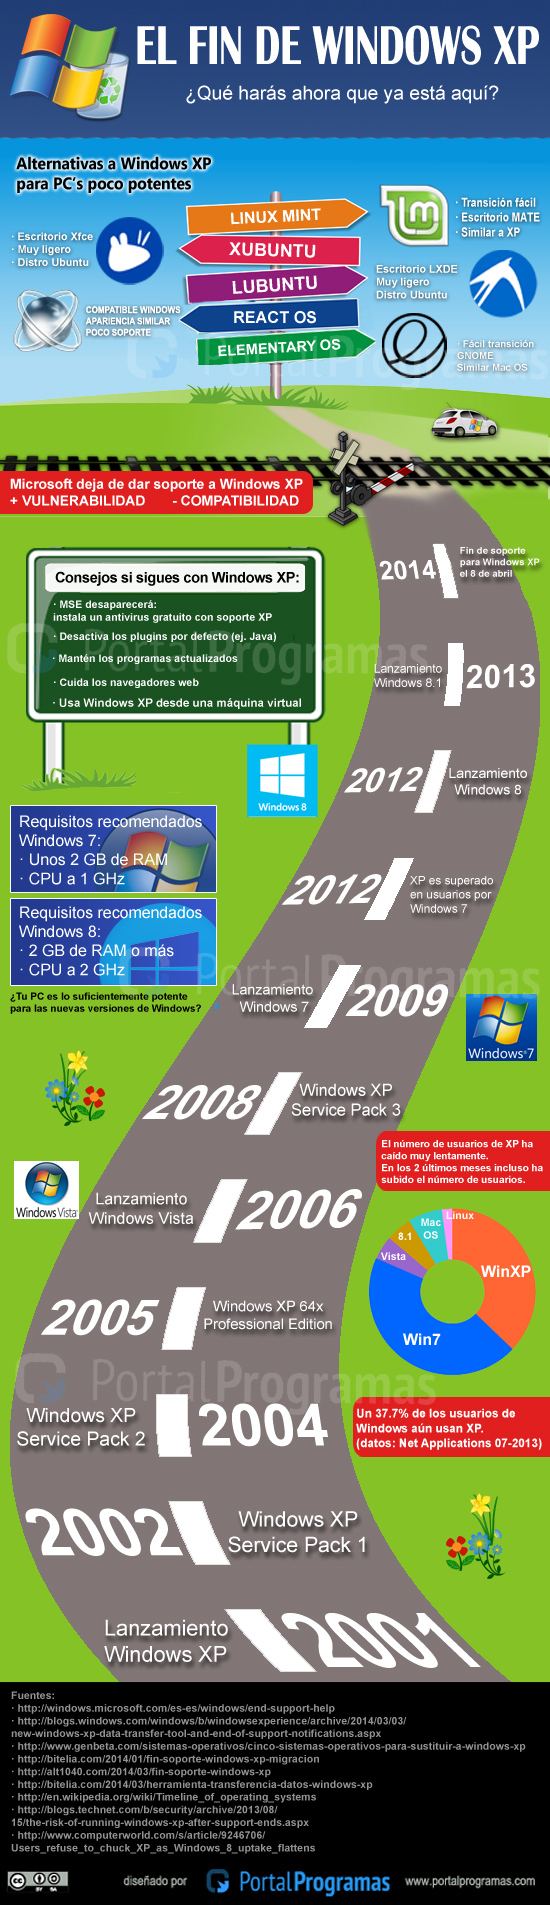 El fin de Windows XP - Infografía